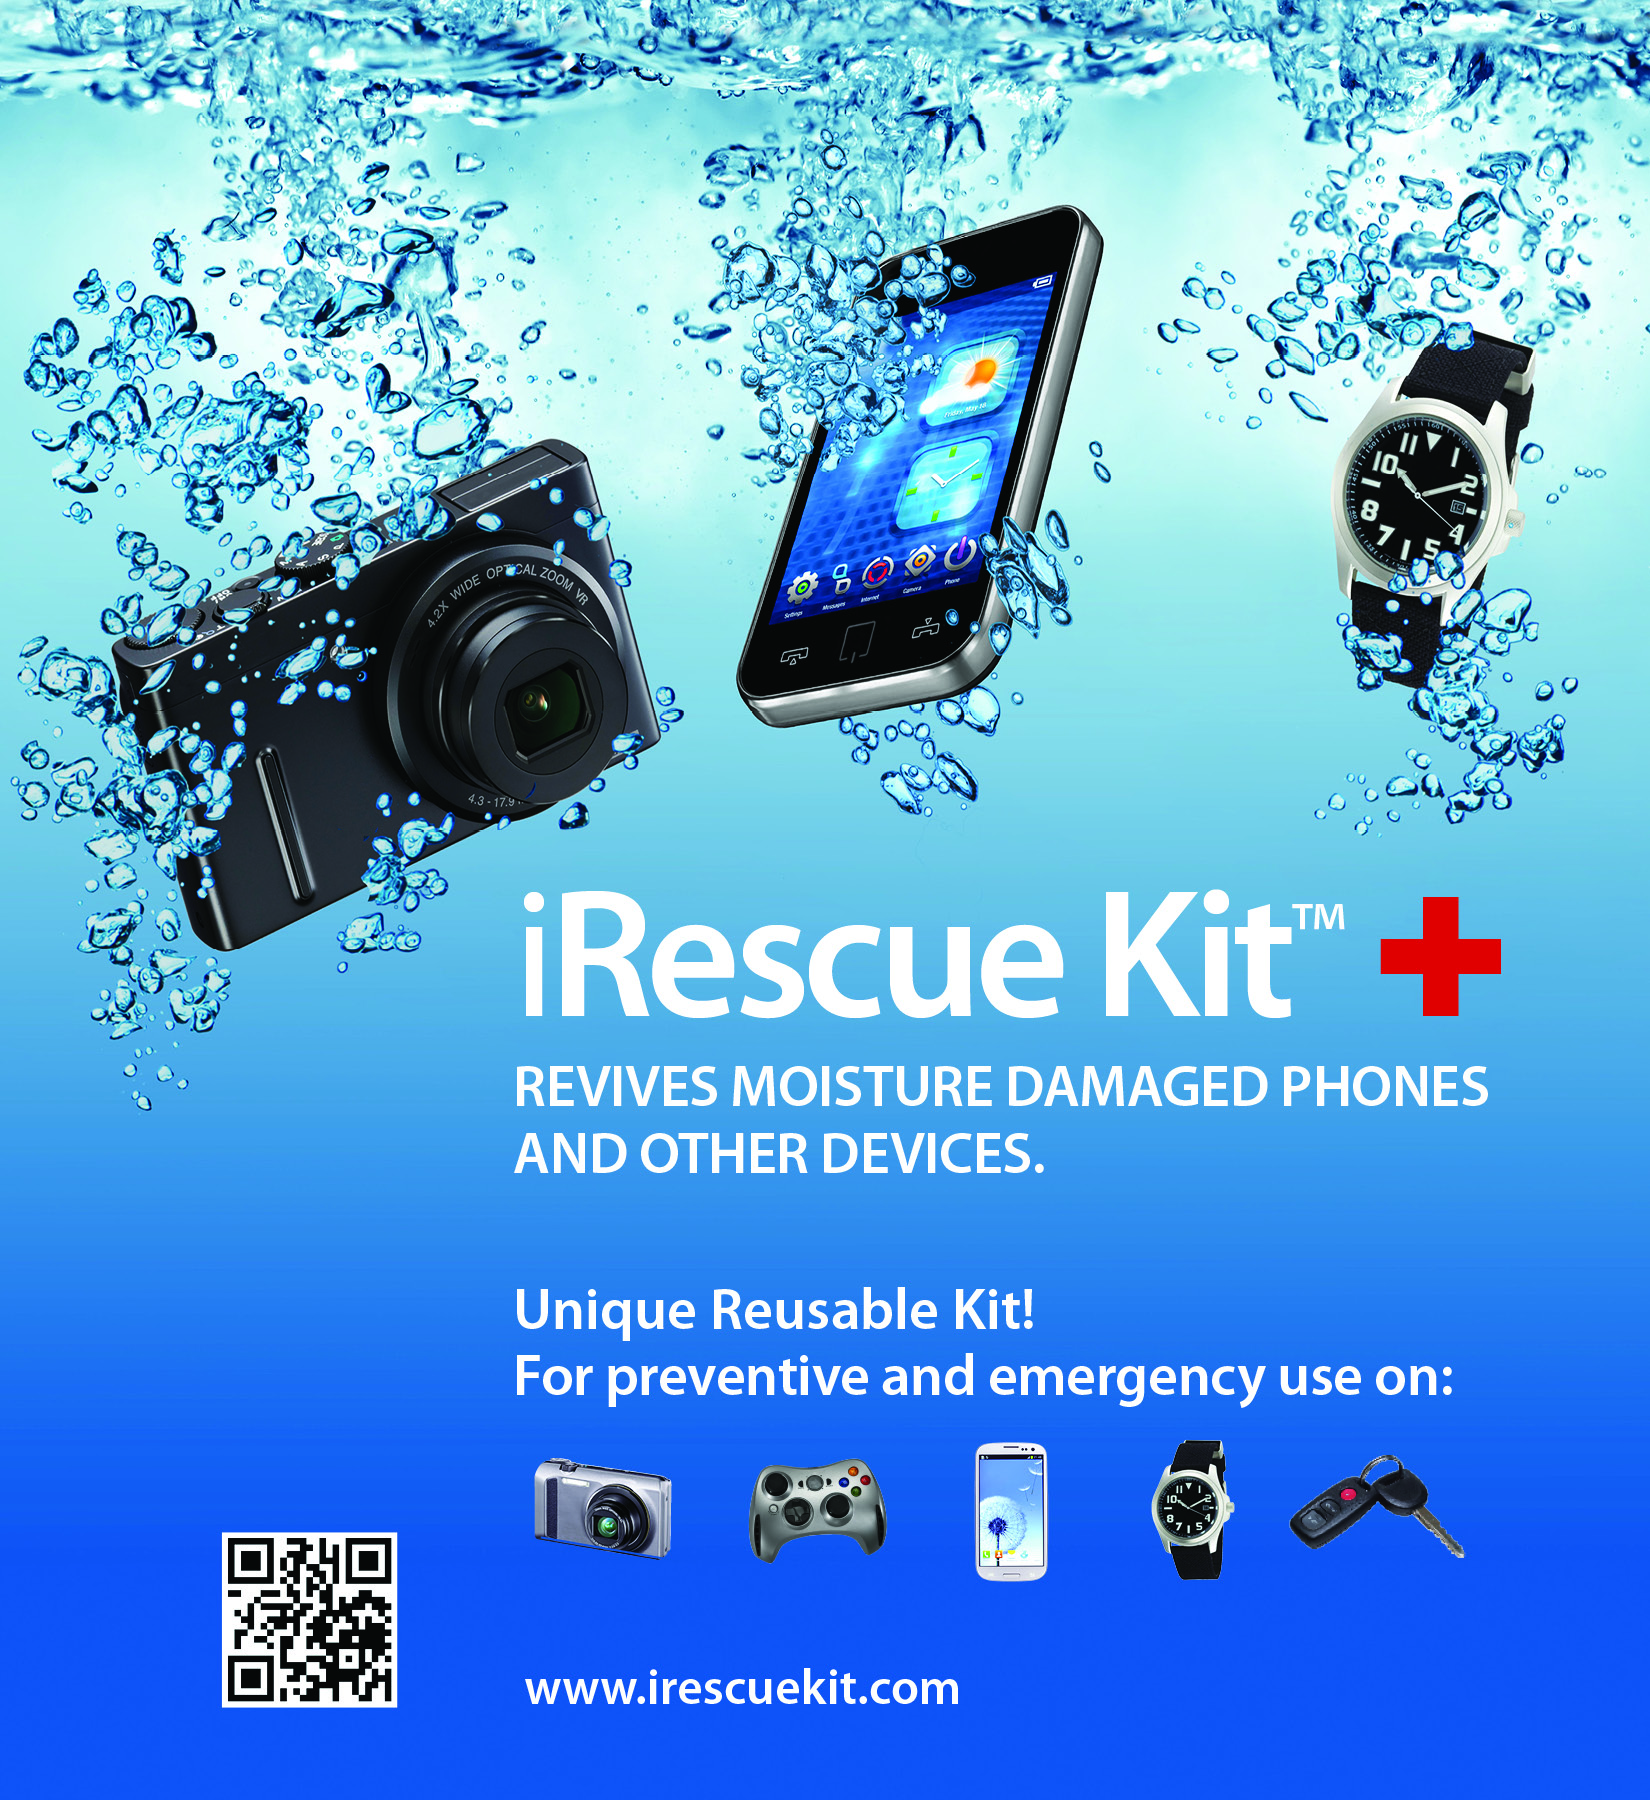 iRescue Kit revives devices